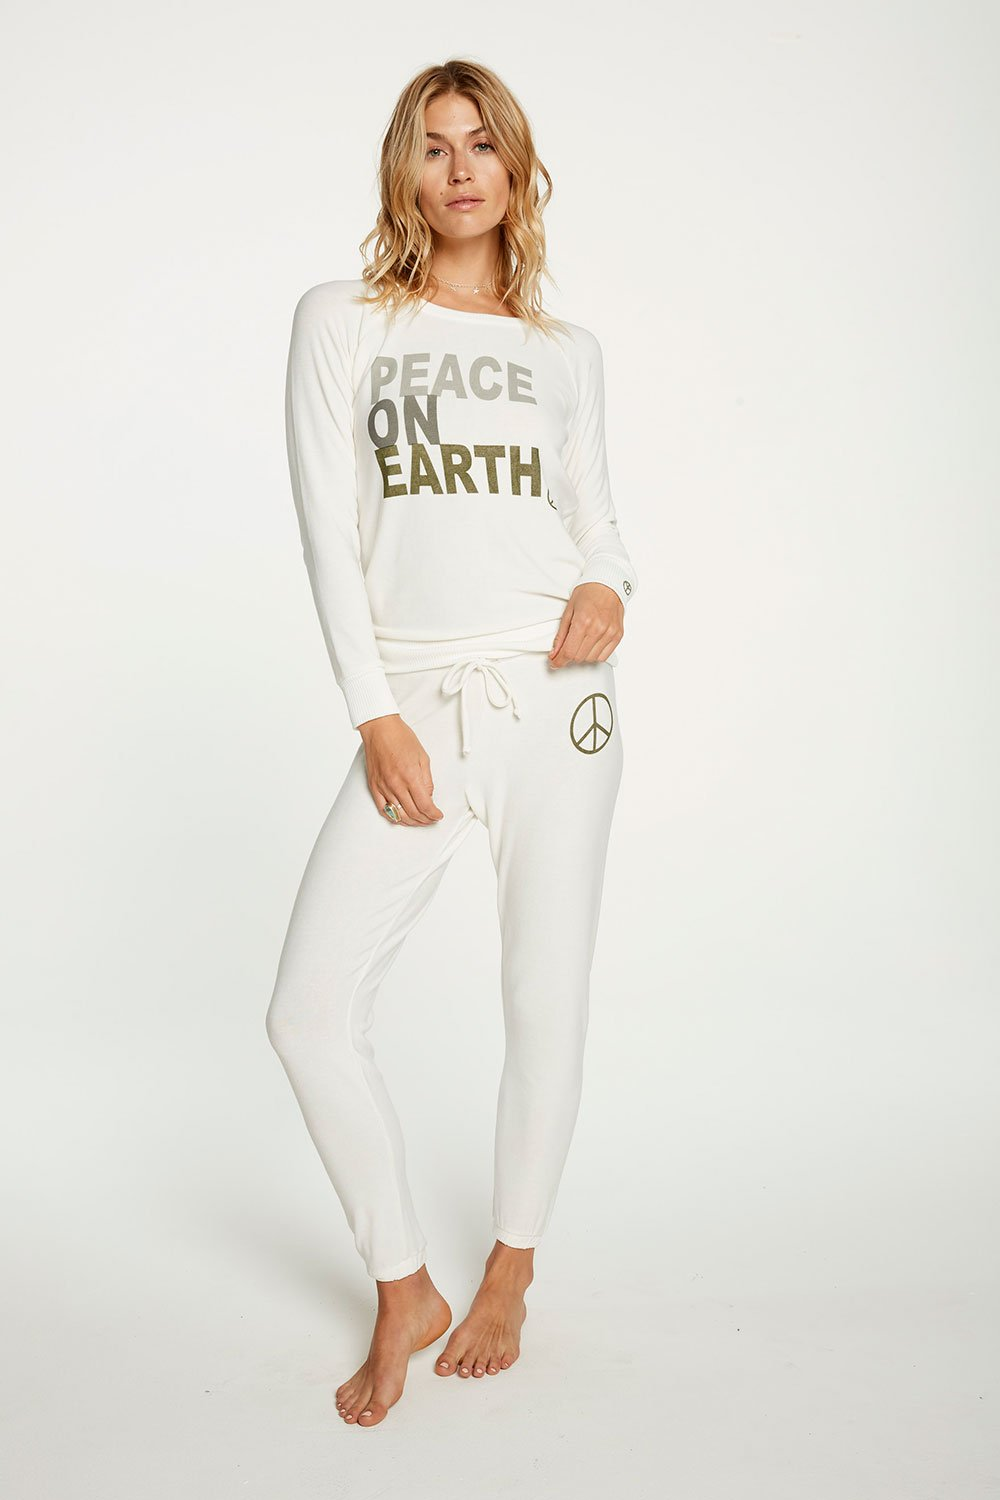 Chaser Peace on Earth Long Sleeve Knit Shirt